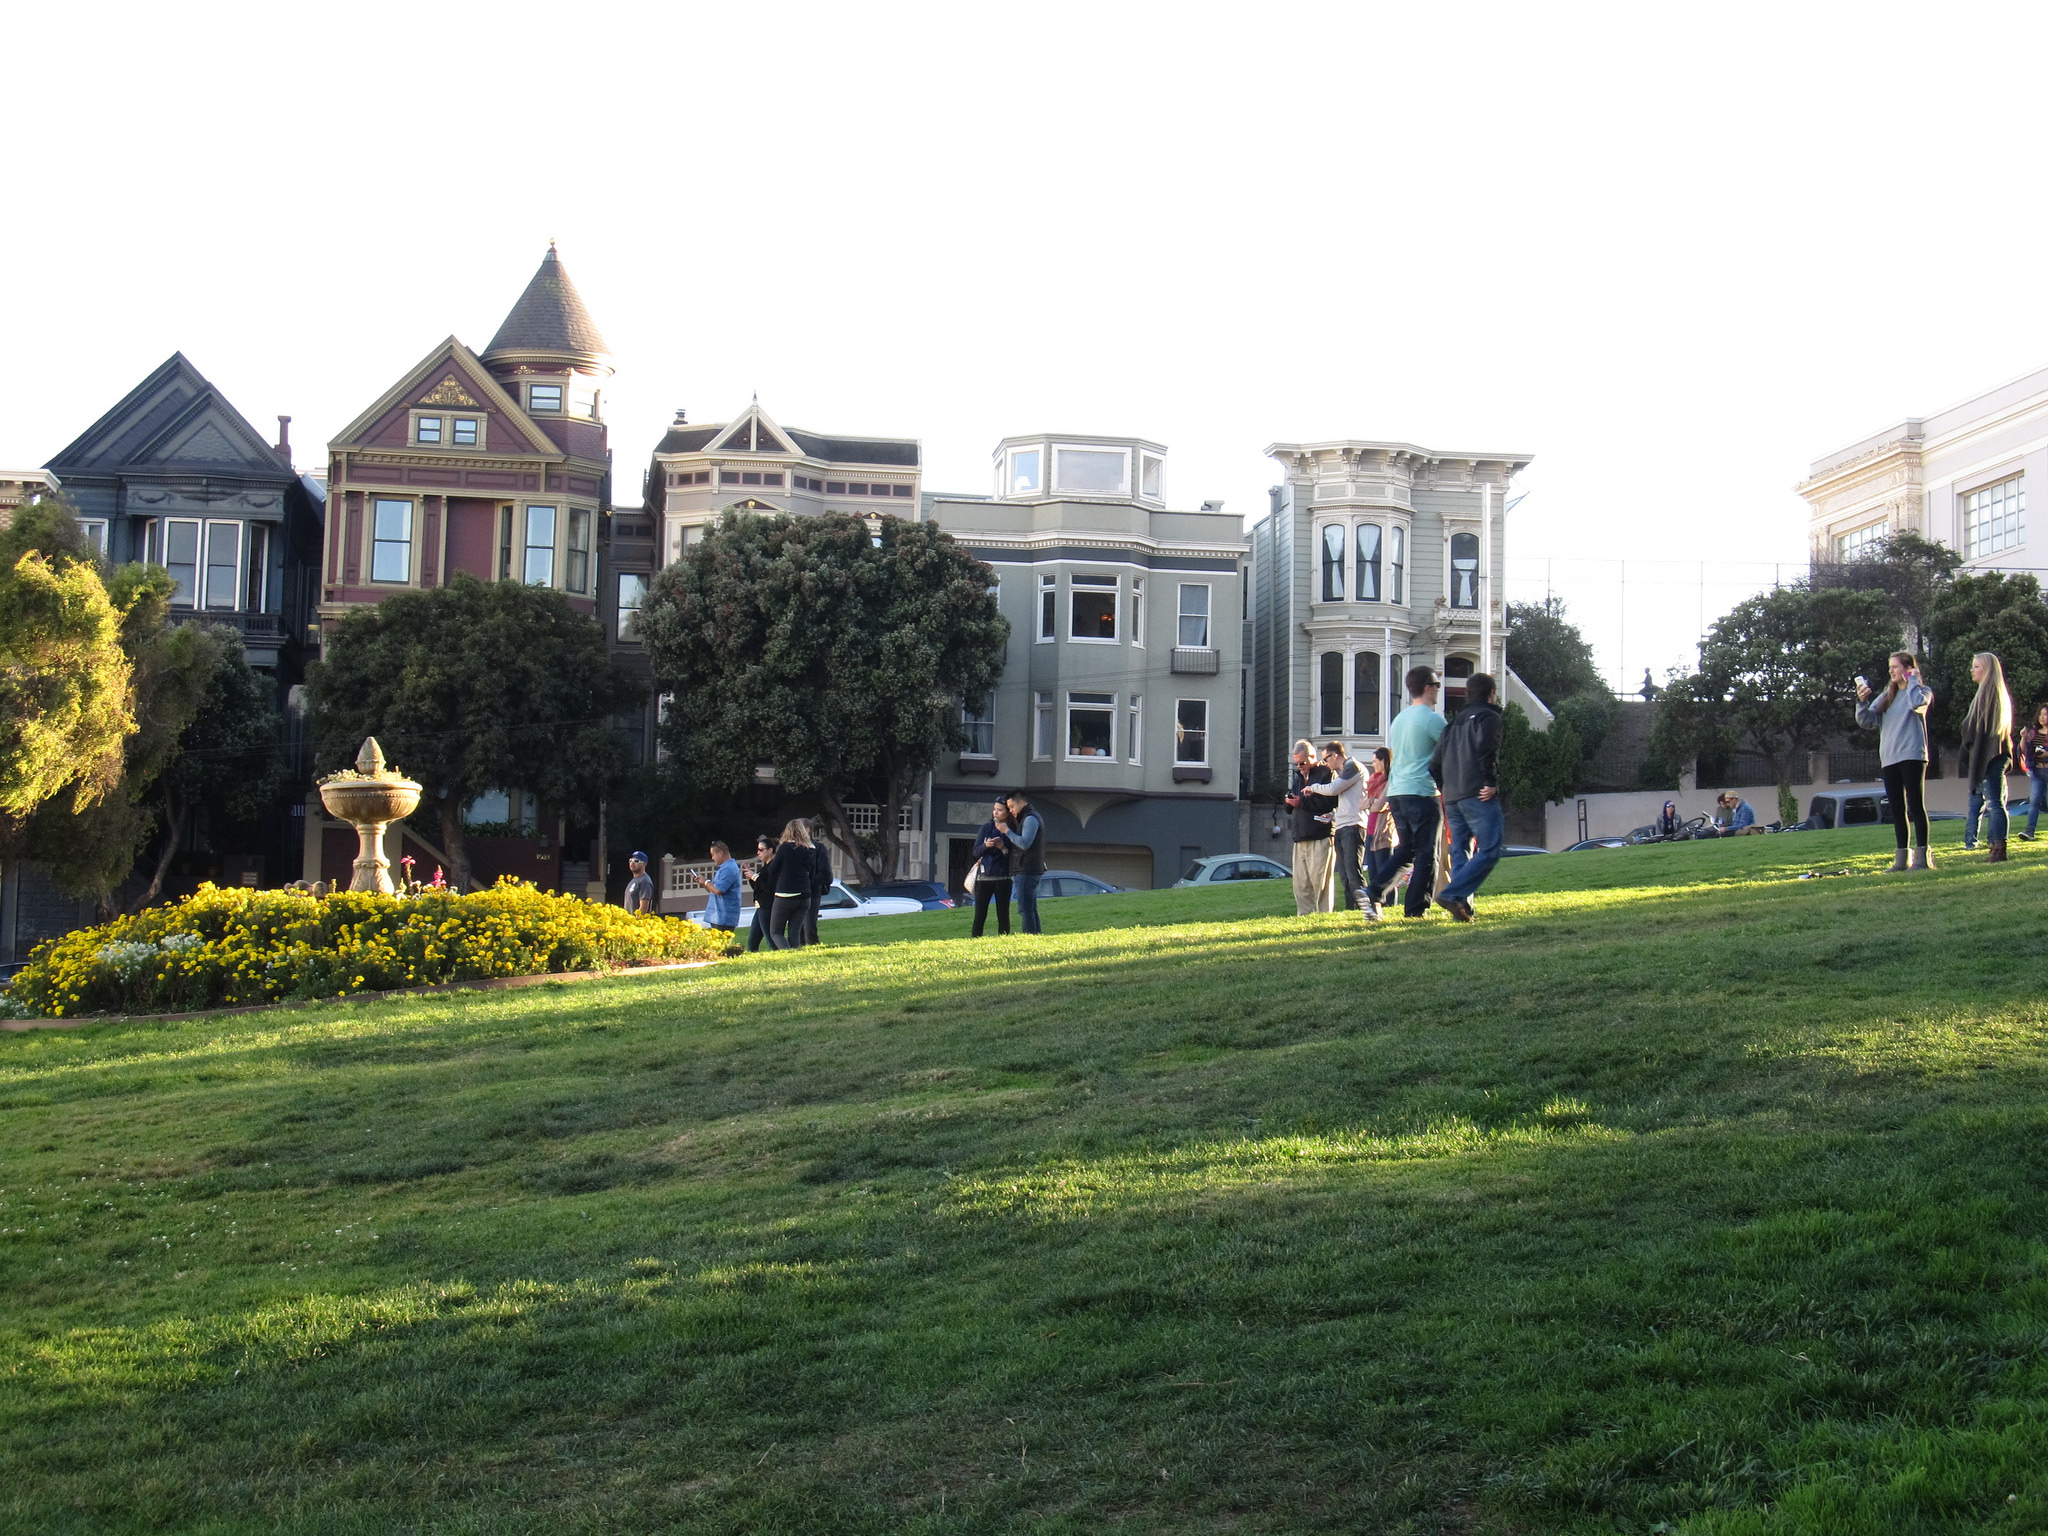 A shady day in Alamo Square, with Victorian houses in the background.